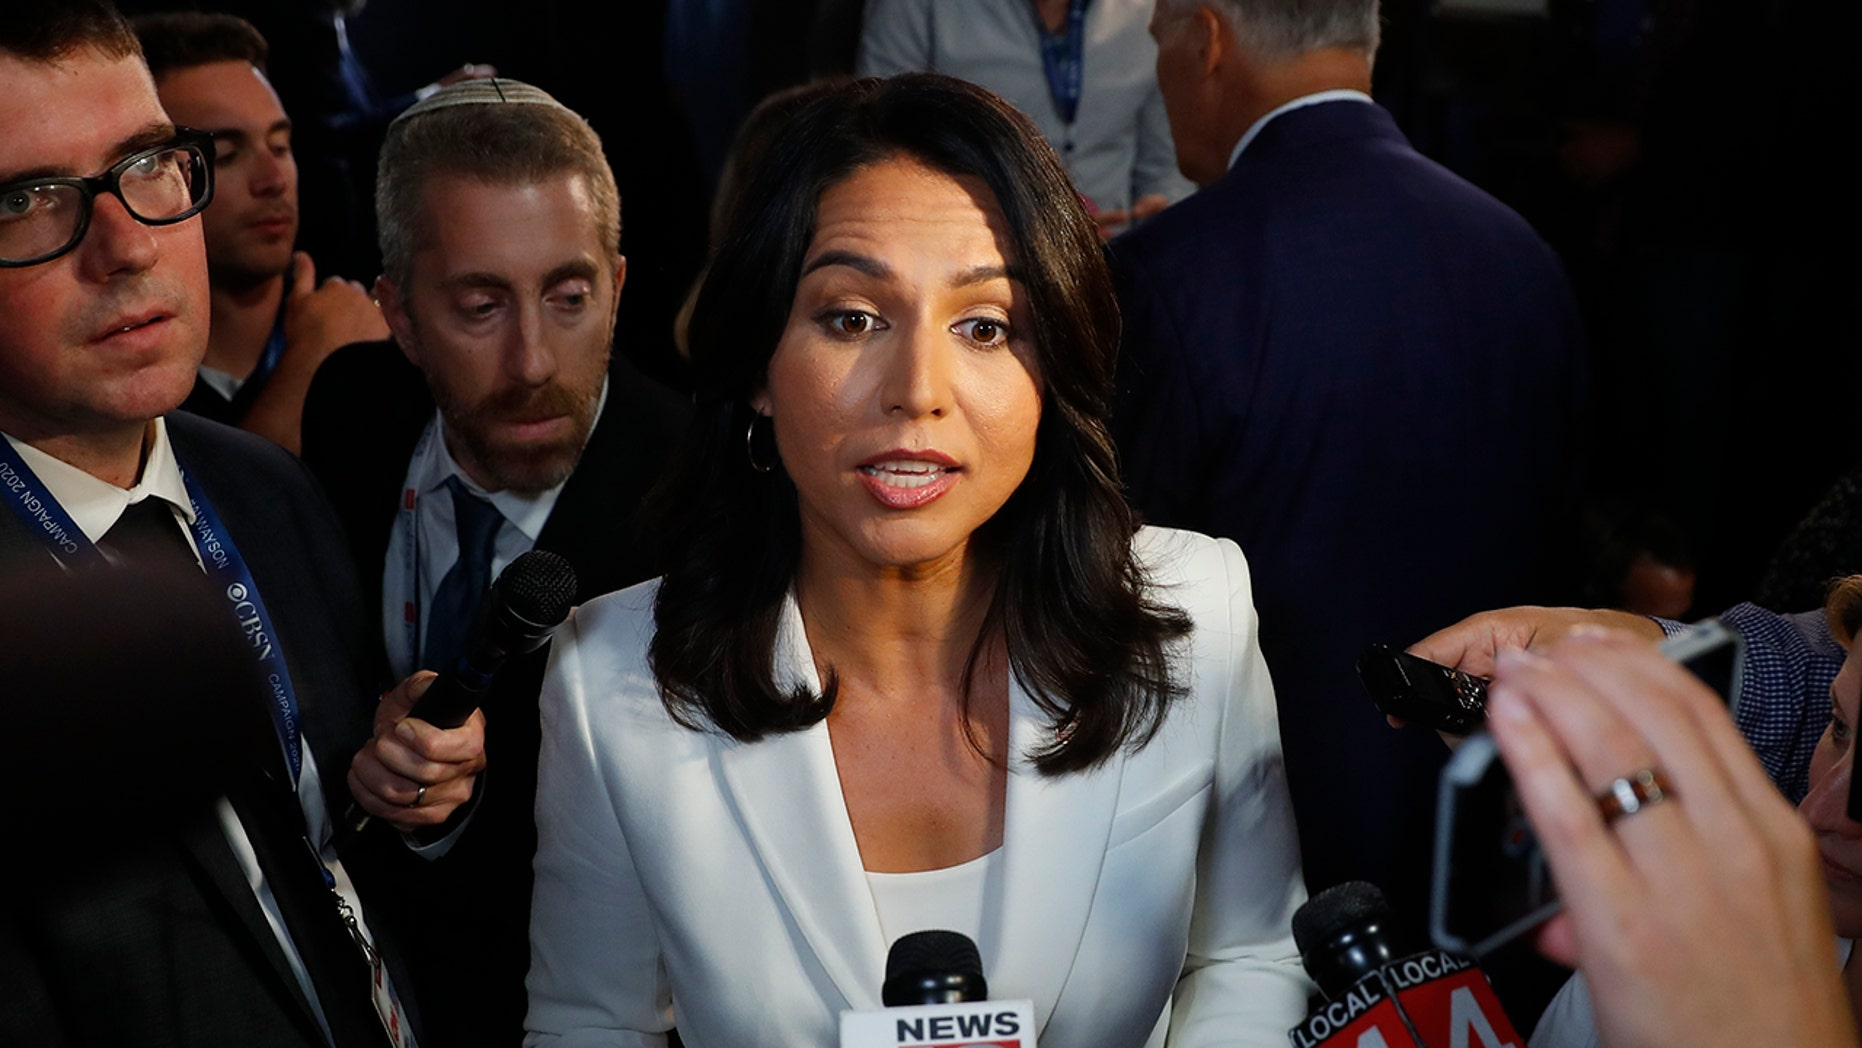 Rep. Tulsi Gabbard, D-Hawaii, answers questions after the second of two Democratic presidential primary debates hosted by CNN Thursday, Aug. 1, 2019, in the Fox Theatre in Detroit. (AP Photo/Paul Sancya)